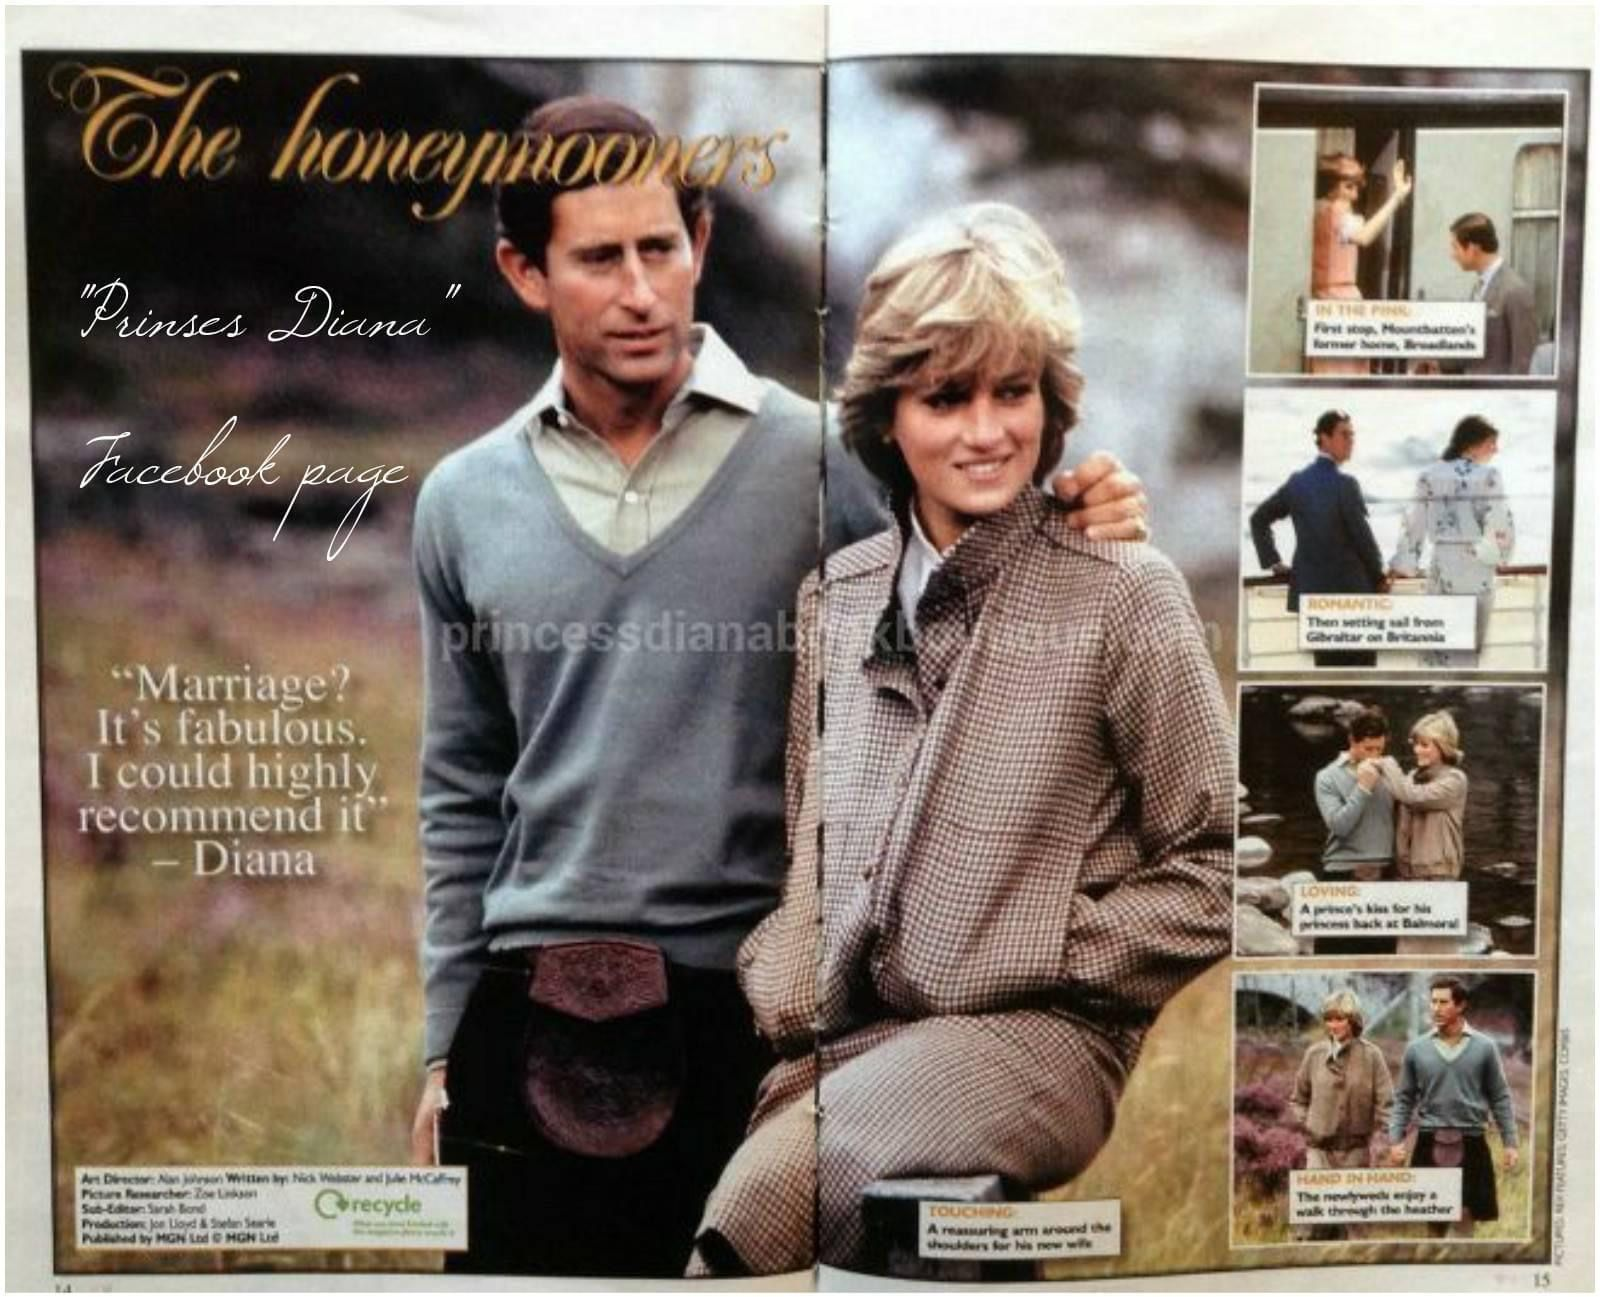 Pin By Simone Stein On Royal Family Princess Diana In 2020 Princess Diana Diana Charles And Diana